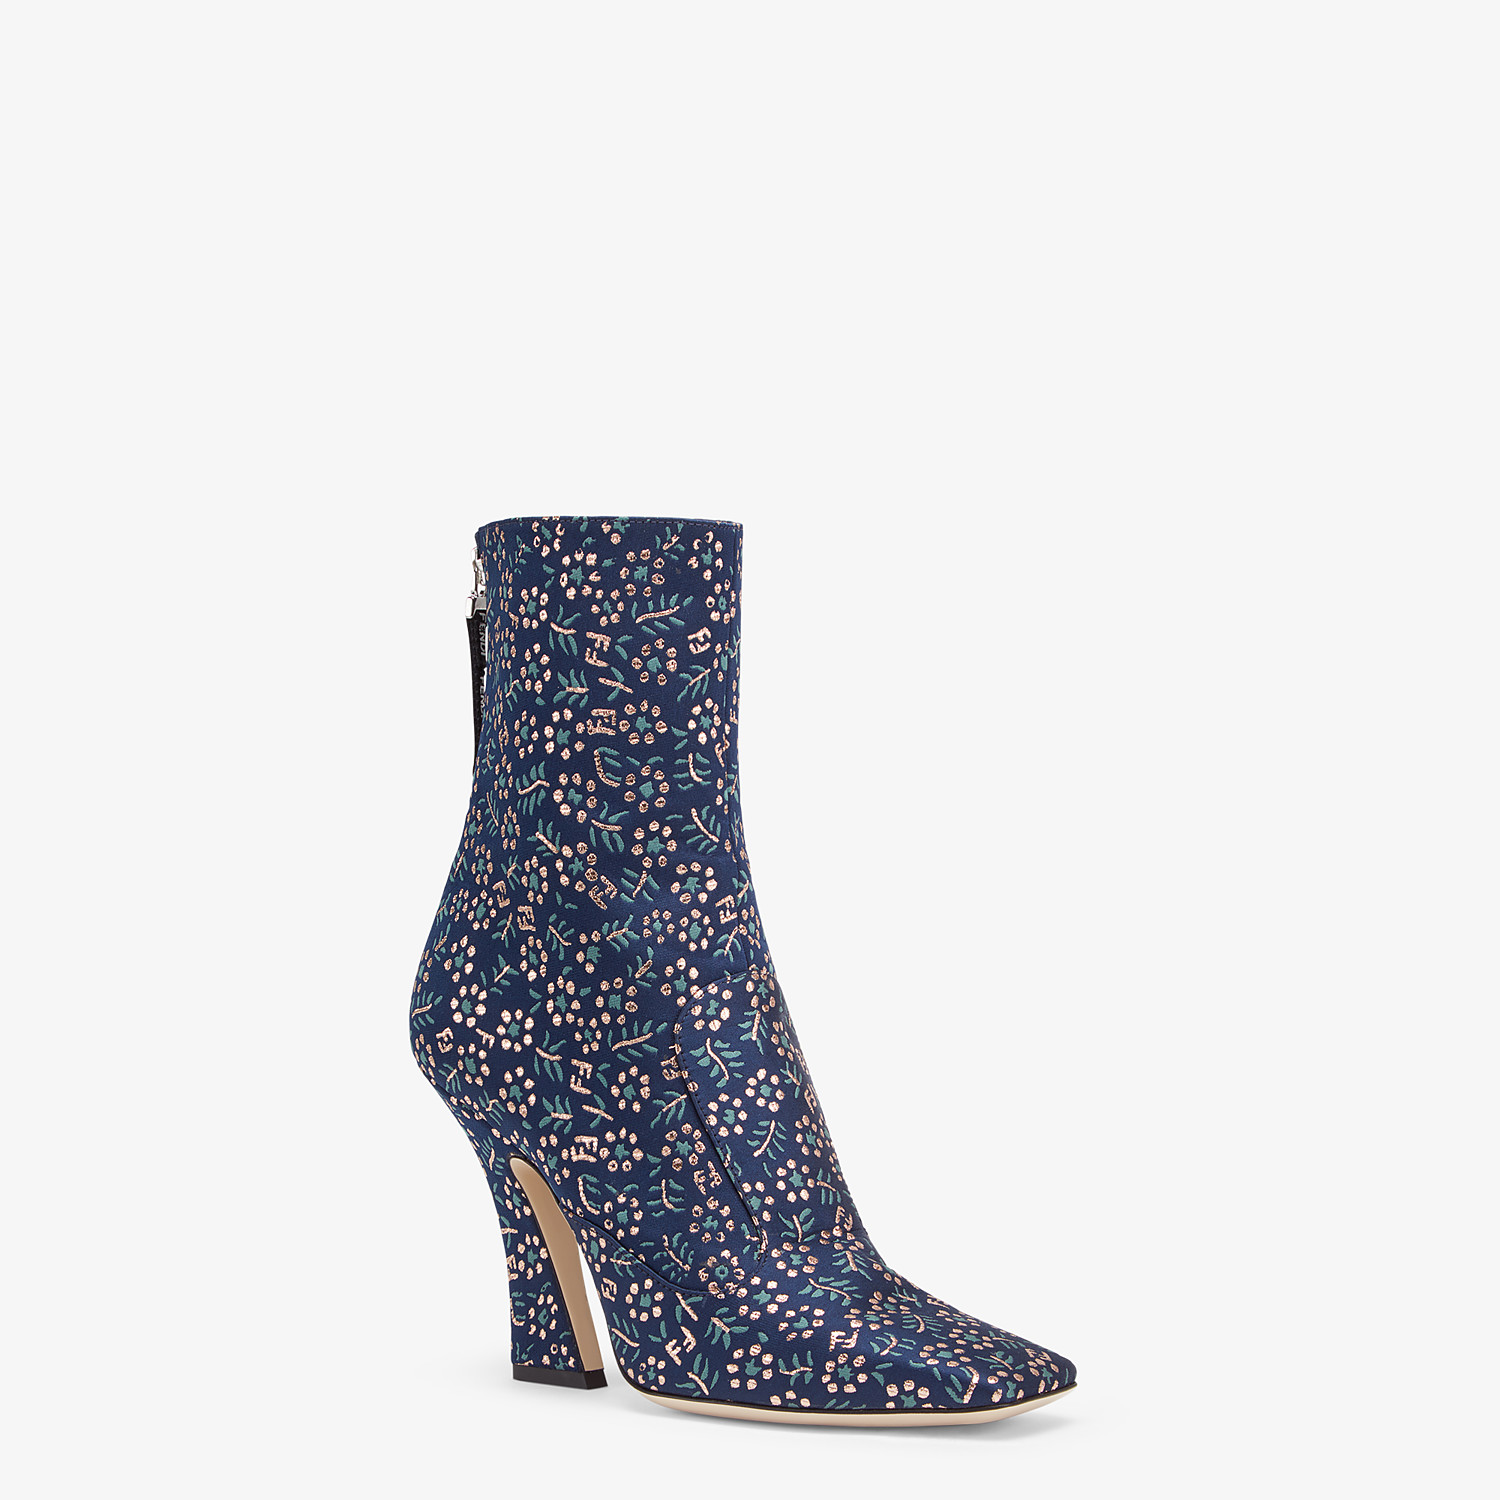 FENDI ANKLE BOOTS - Multicolor fabric booties - view 2 detail